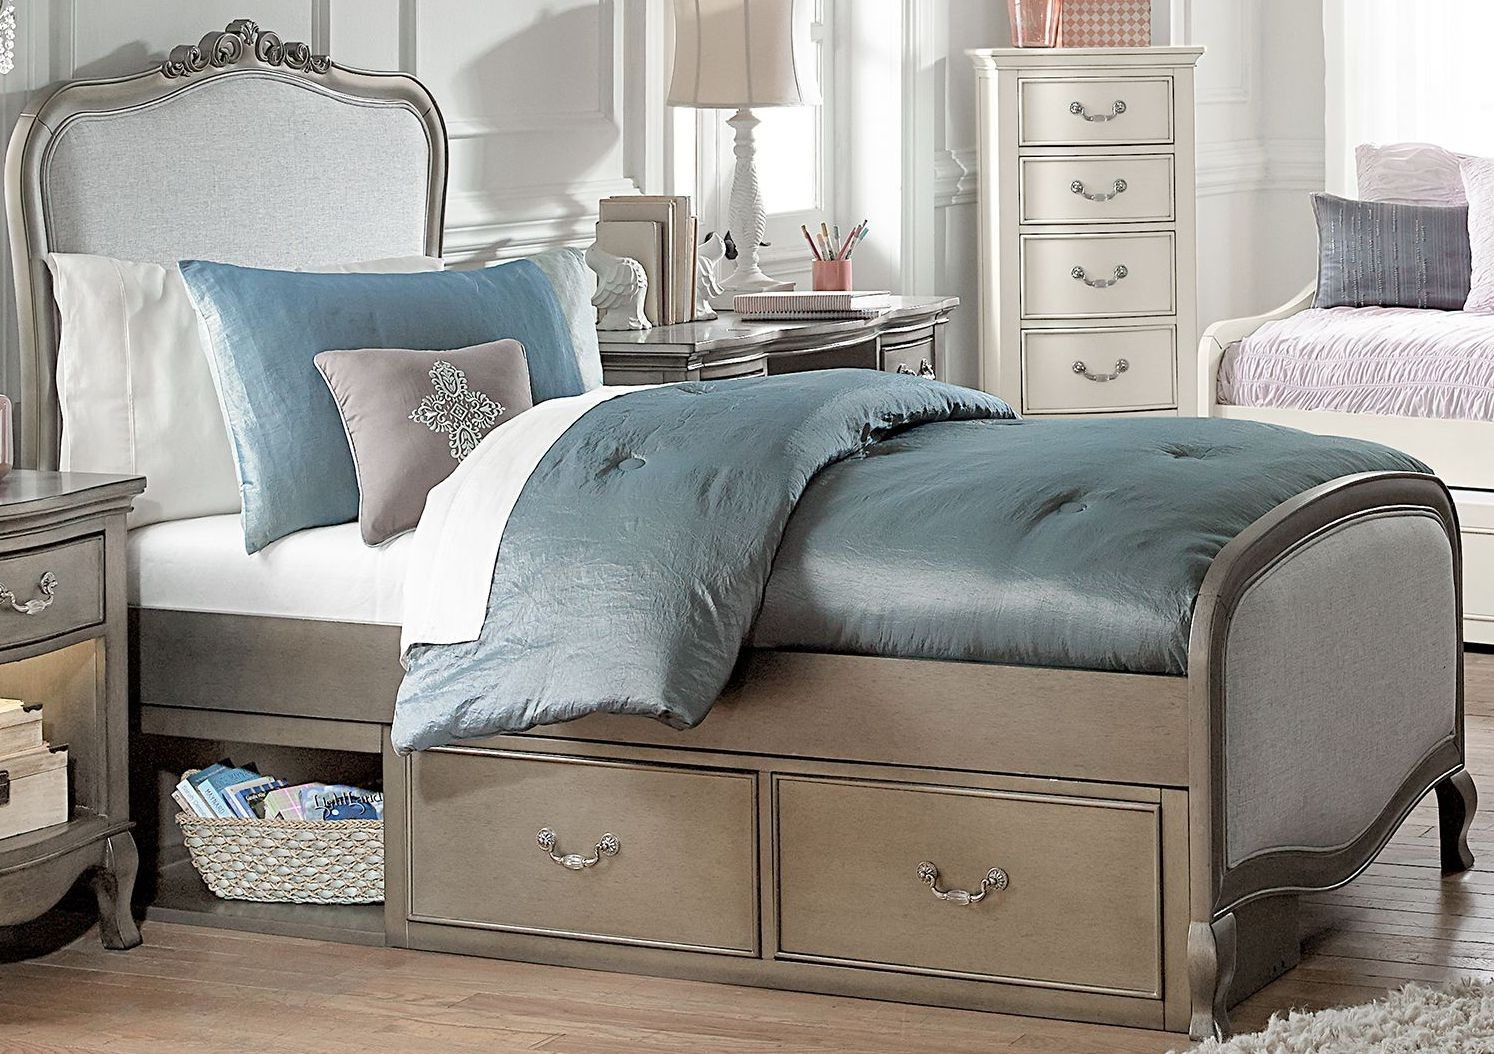 kensington antique silver katherine upholstered twin panel bed with storage from ne kids. Black Bedroom Furniture Sets. Home Design Ideas